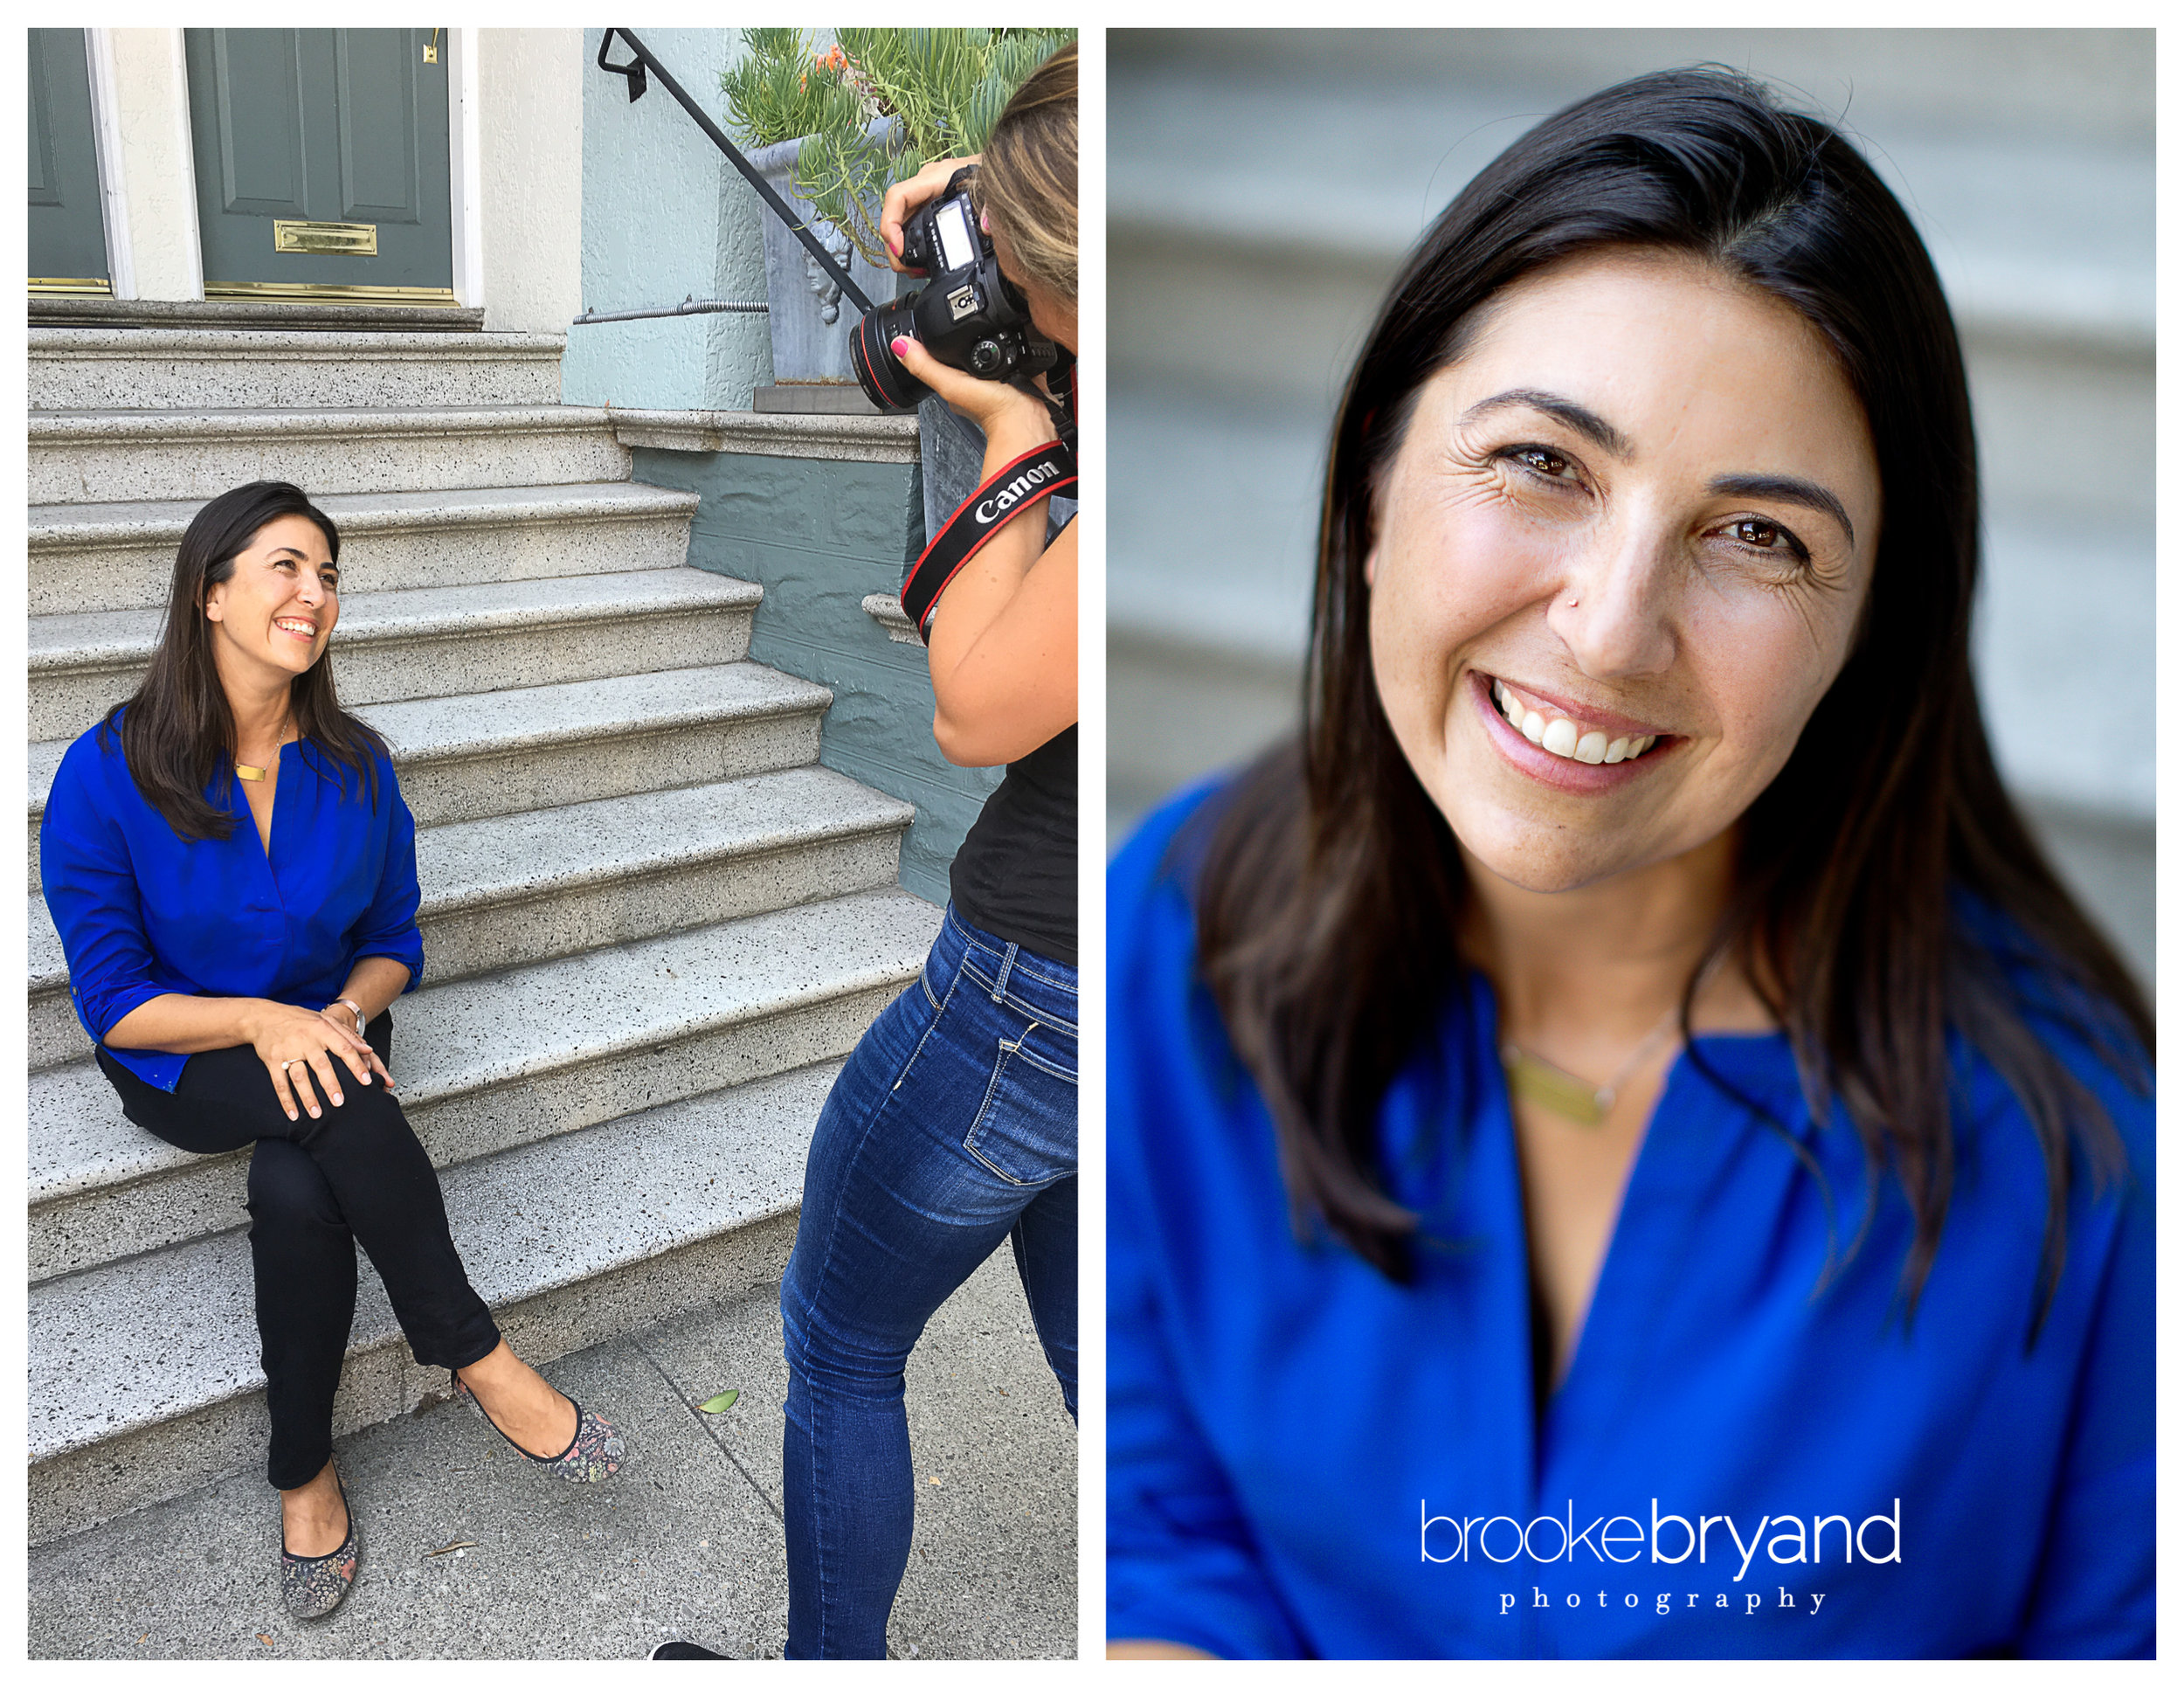 09.2017-Nova Goldberg-San Francisco Therapist-Brooke Bryand Photography-Corporate Lifestyle Photographer-Website Lifestyle Photographer-San Francisco Headshot Photographer-San Francisco Lifestyle Corporate Photographer-1.jpg